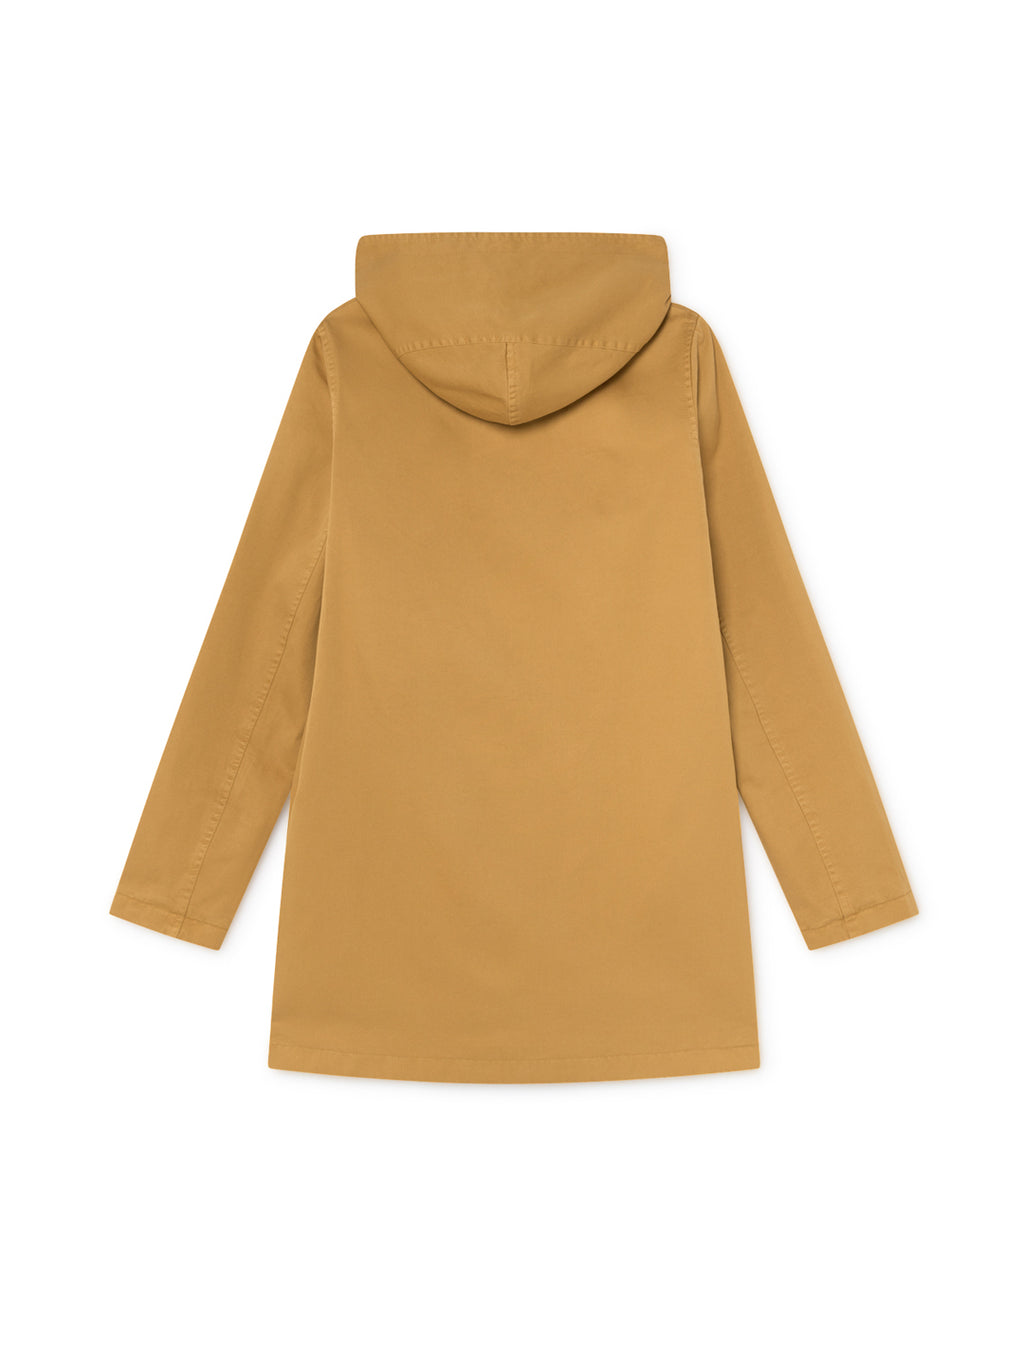 TWOTHIRDS Womens Jacket: Skorpio - Mustard back